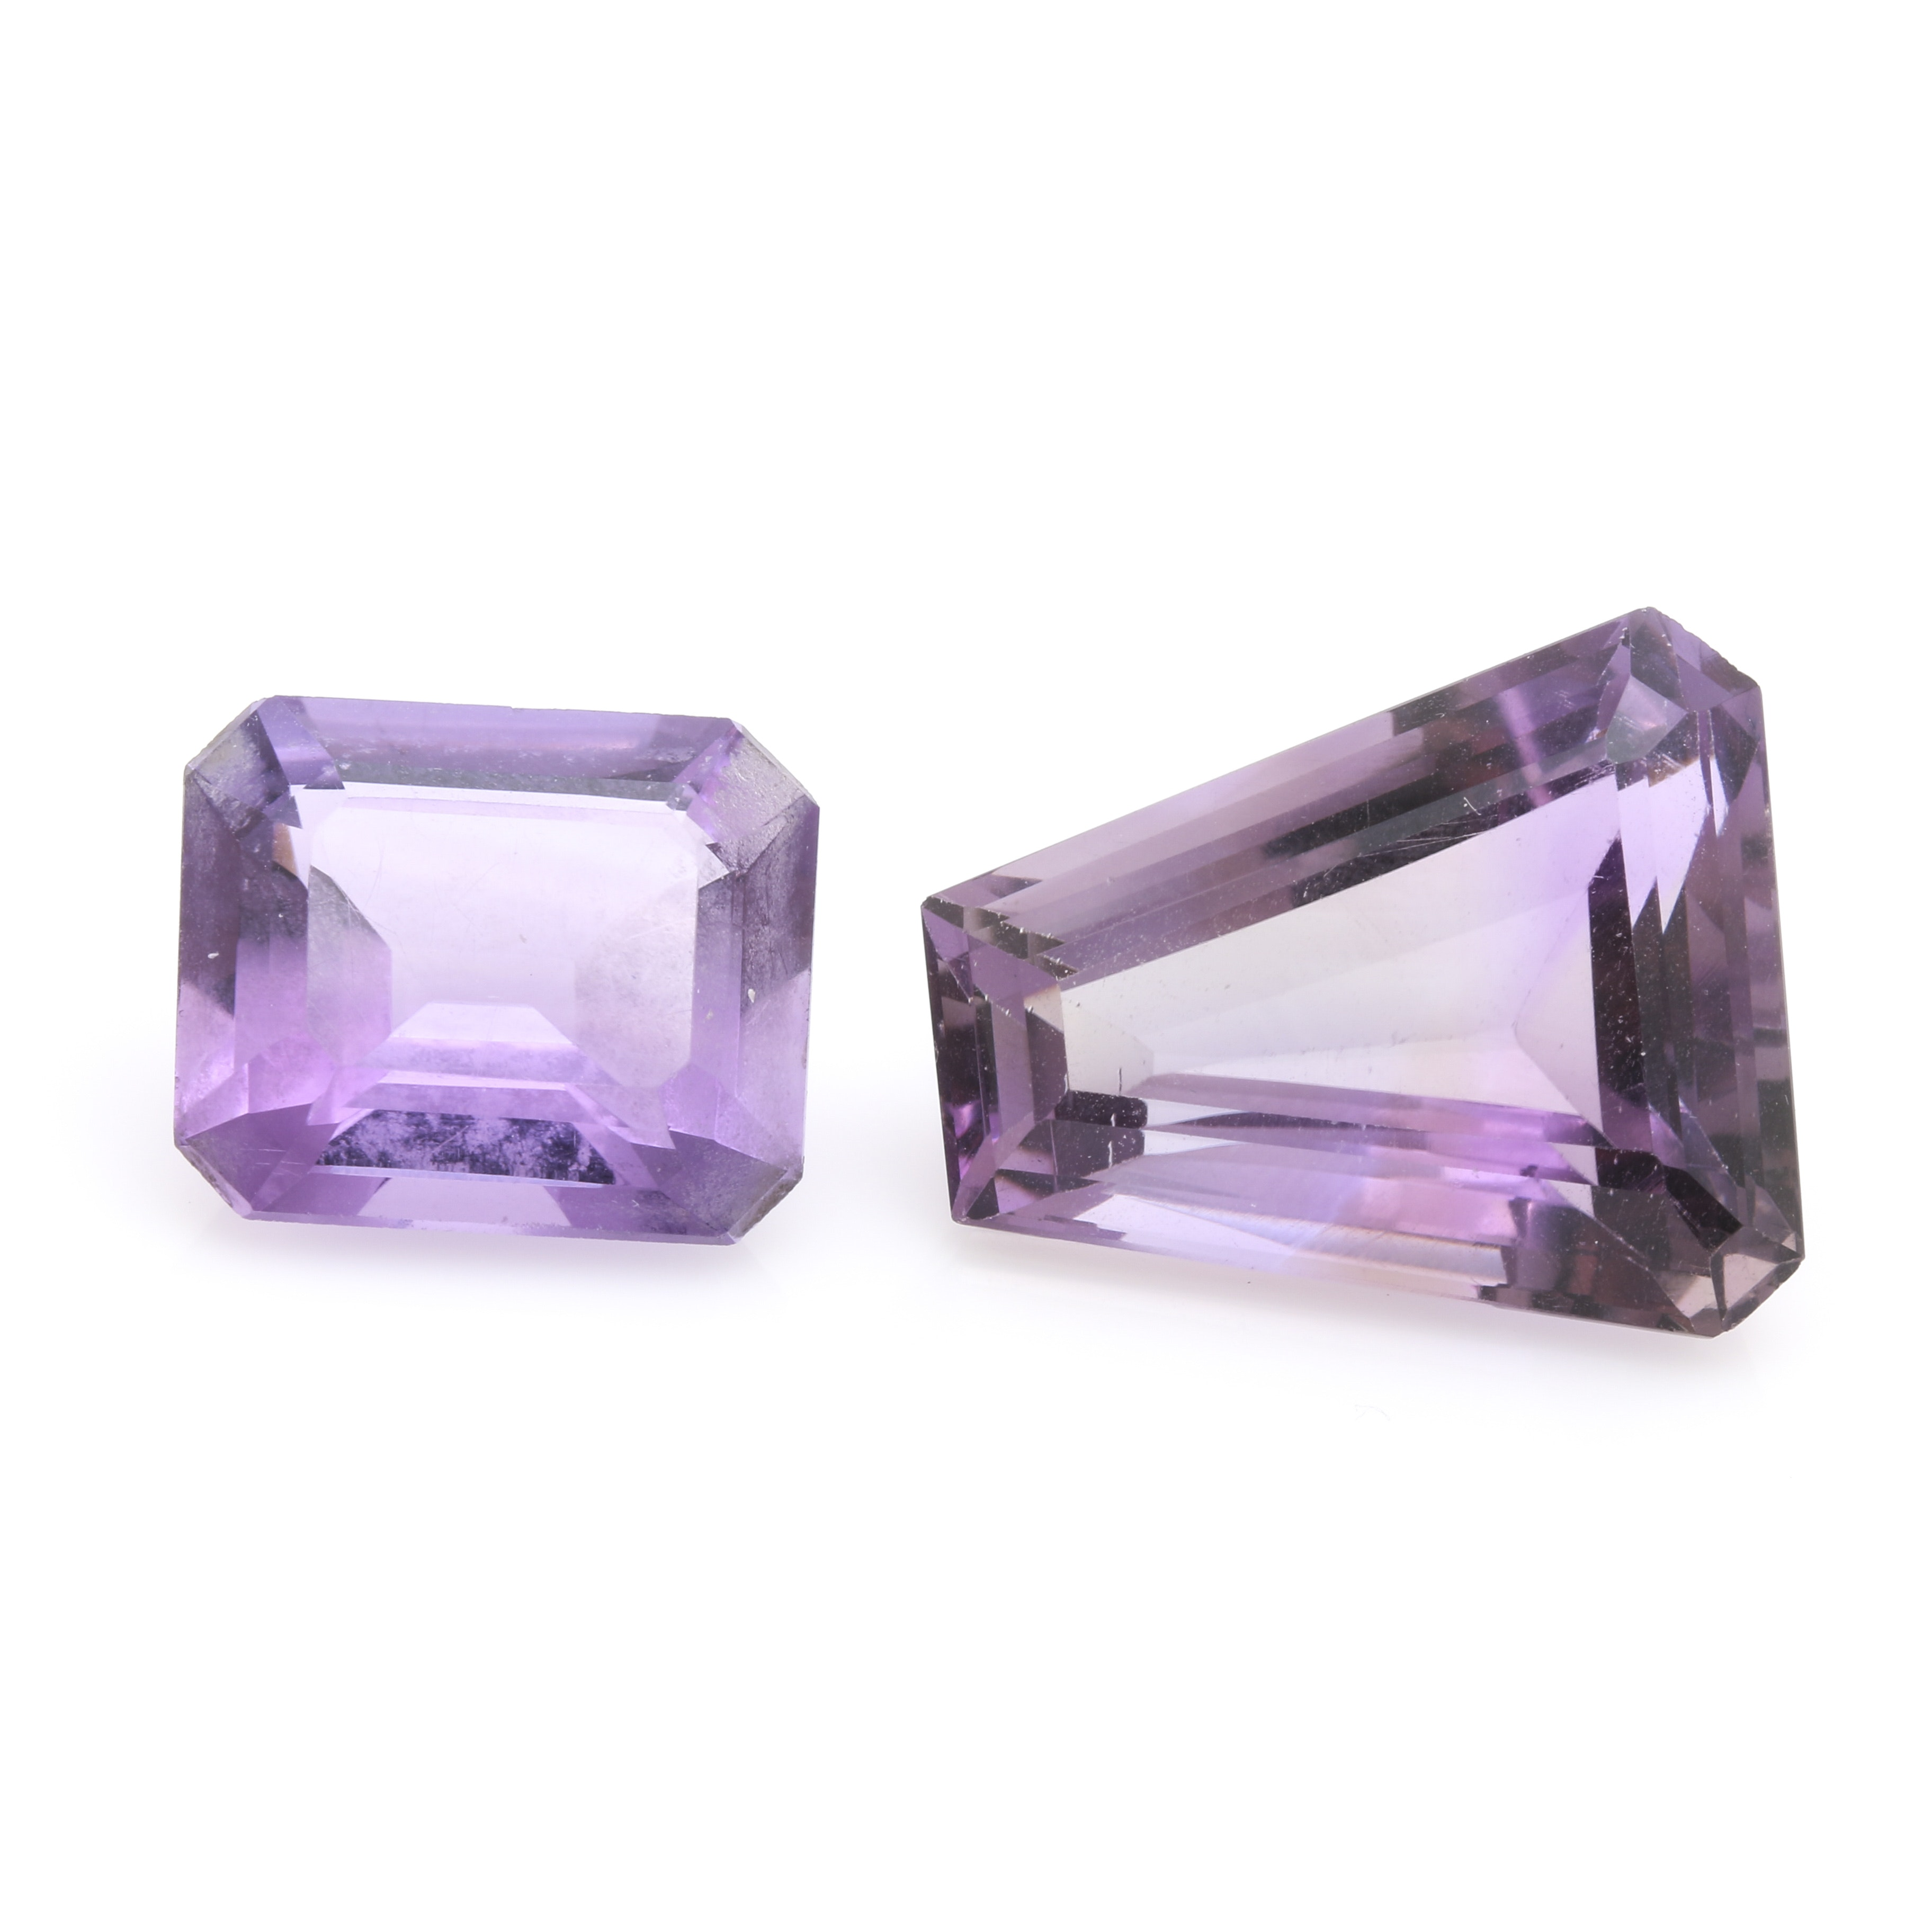 Pair of 24.63 CTW Amethyst Loose Gemstones